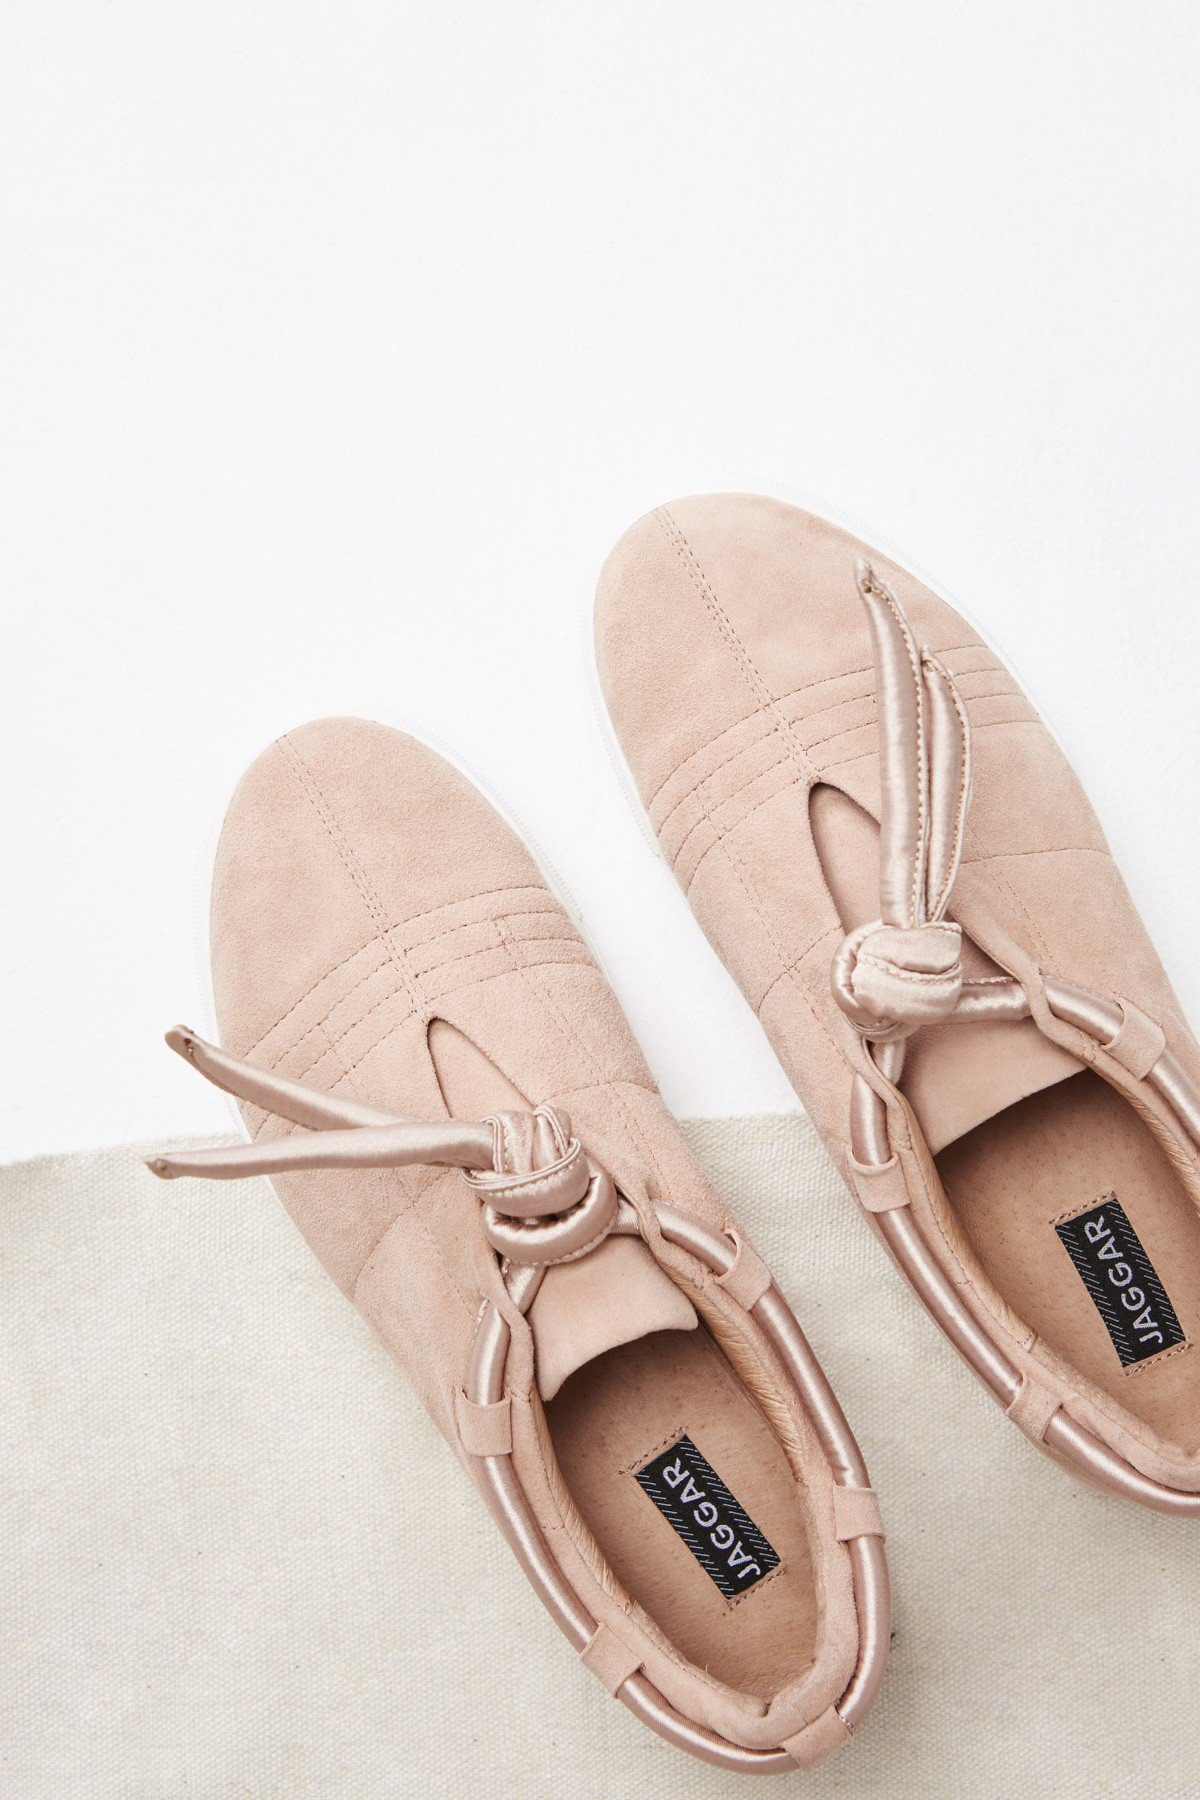 ja_apparition_sneaker_suede_nude_nh_60102-7.jpg